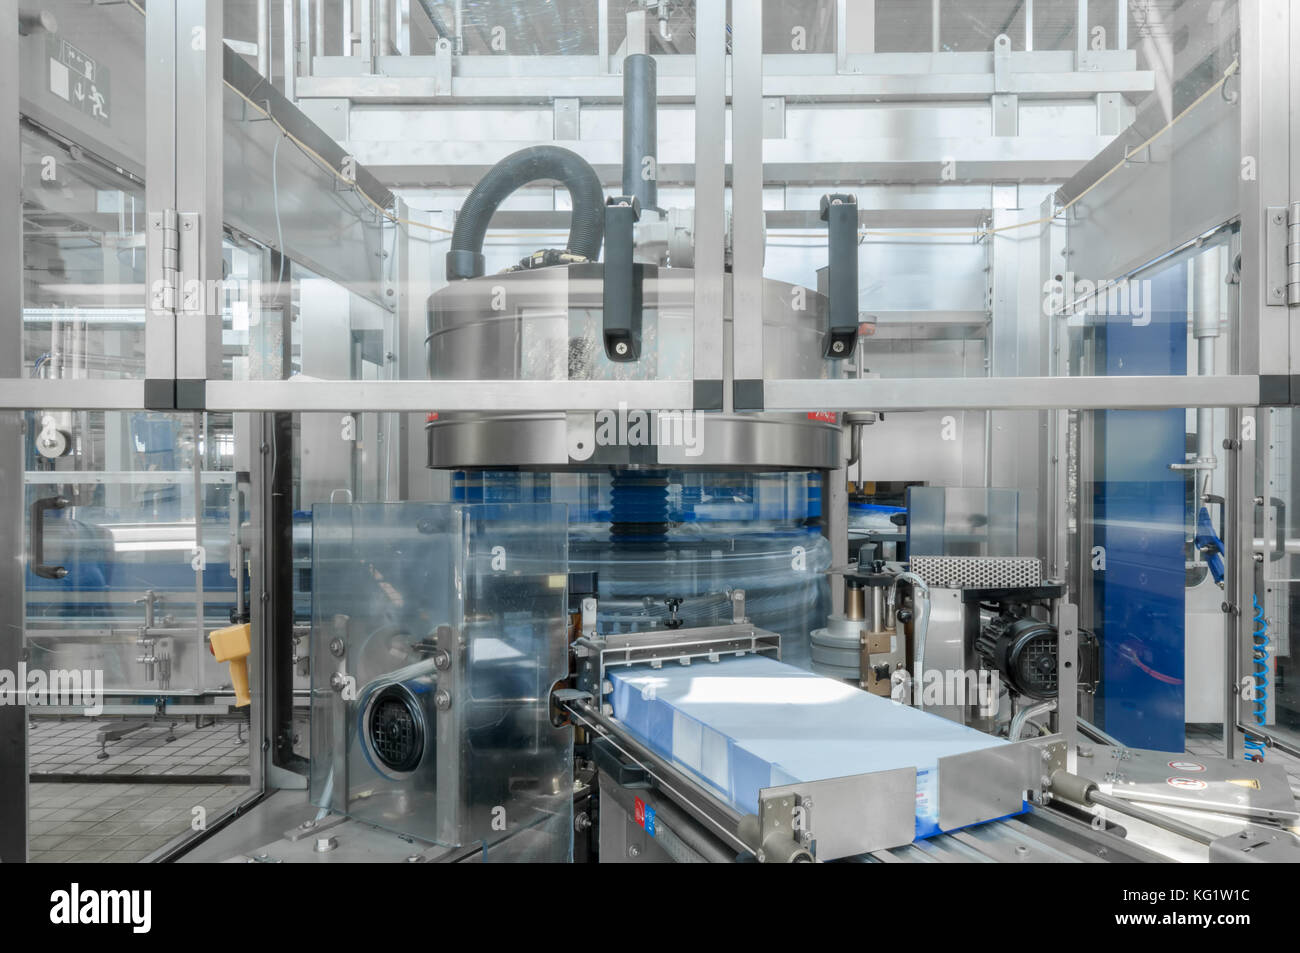 for the production of plastic bottles and bottles on a conveyor belt factory - Stock Image